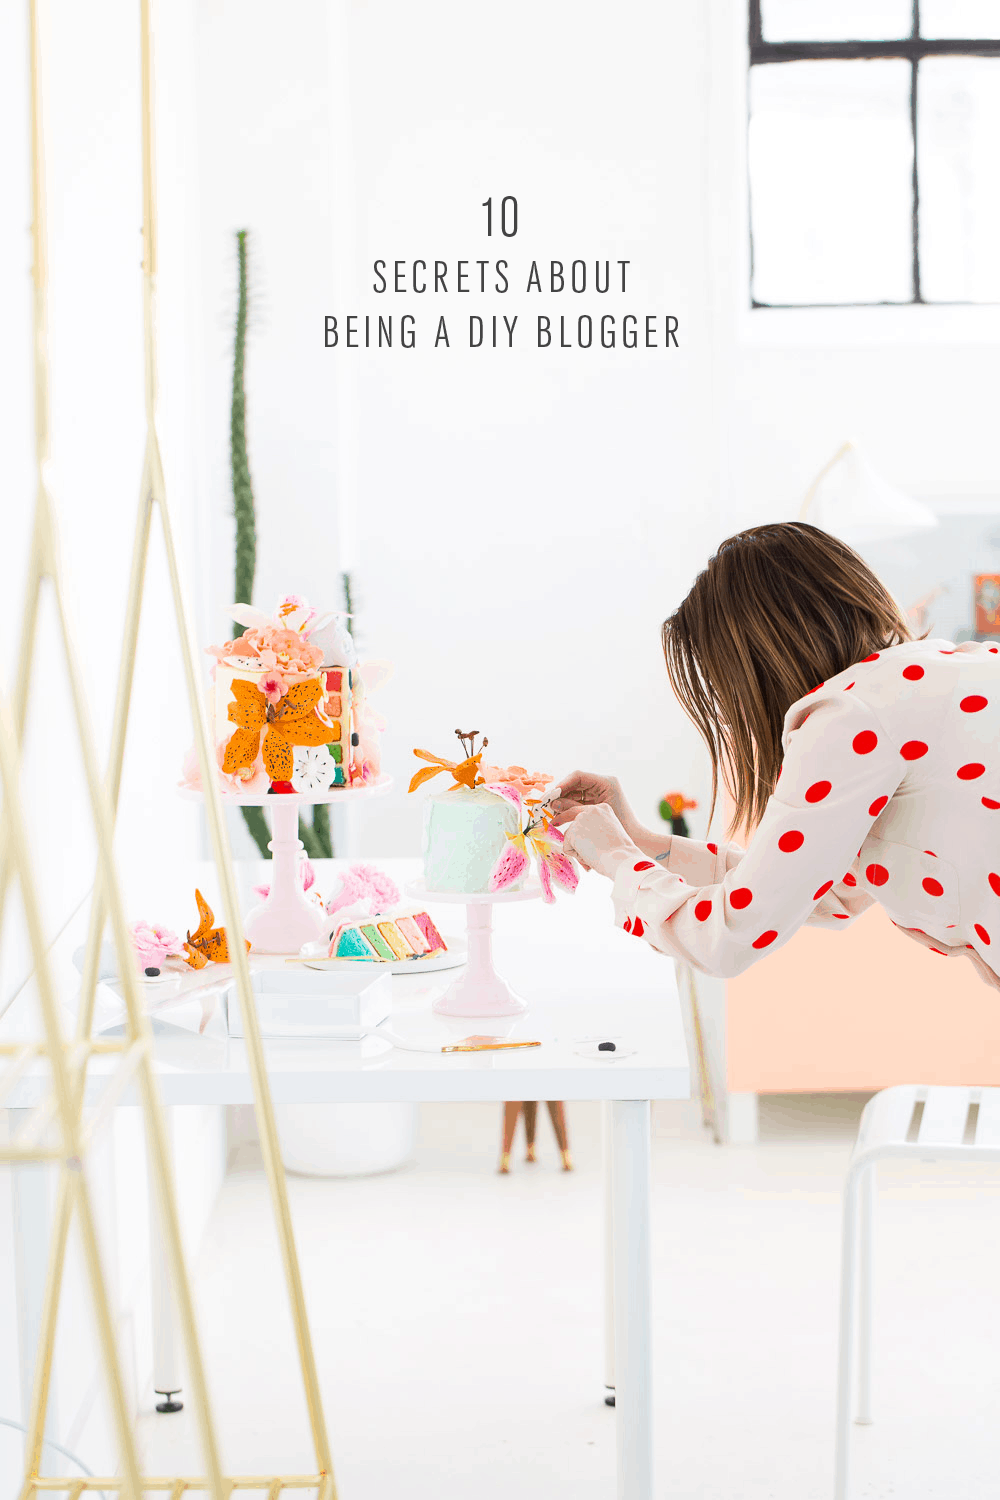 10 Secret Things About Being a DIY blogger you probably didn't know - sugar and cloth - ashley rose